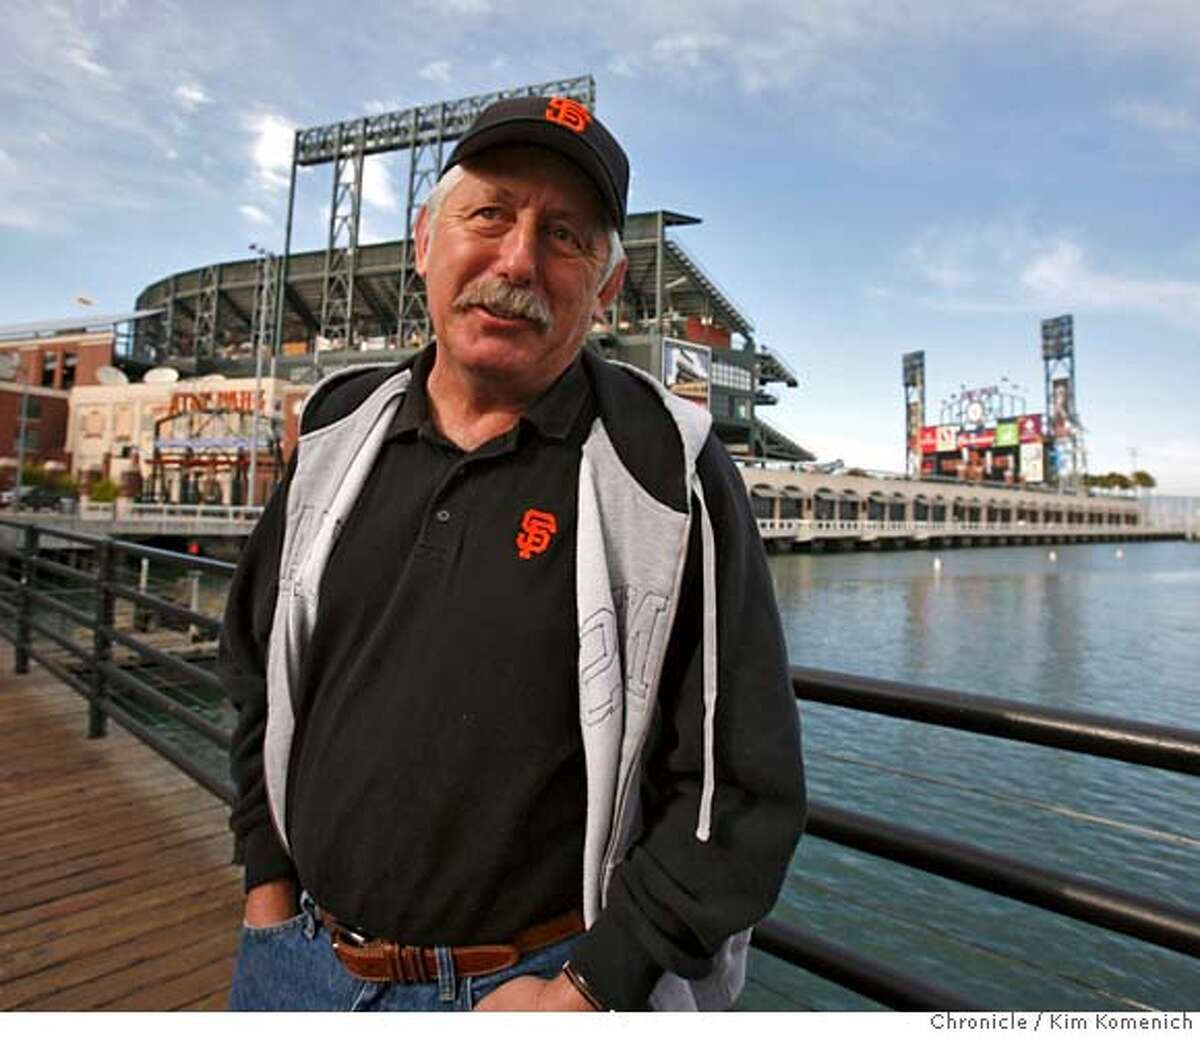 BONDSREACT_034_KK.JPG Luigi Dentone, 57 of Santa Cruz is amongs fans arriving for Friday night's game reacting to the announcement that Barry Bonds will be leaving the Giants. Photo by Kim Komenich/The Chronicle **Luigi Dentone MANDATORY CREDIT FOR PHOTOG AND SAN FRANCISCO CHRONICLE. NO SALES- MAGS OUT.